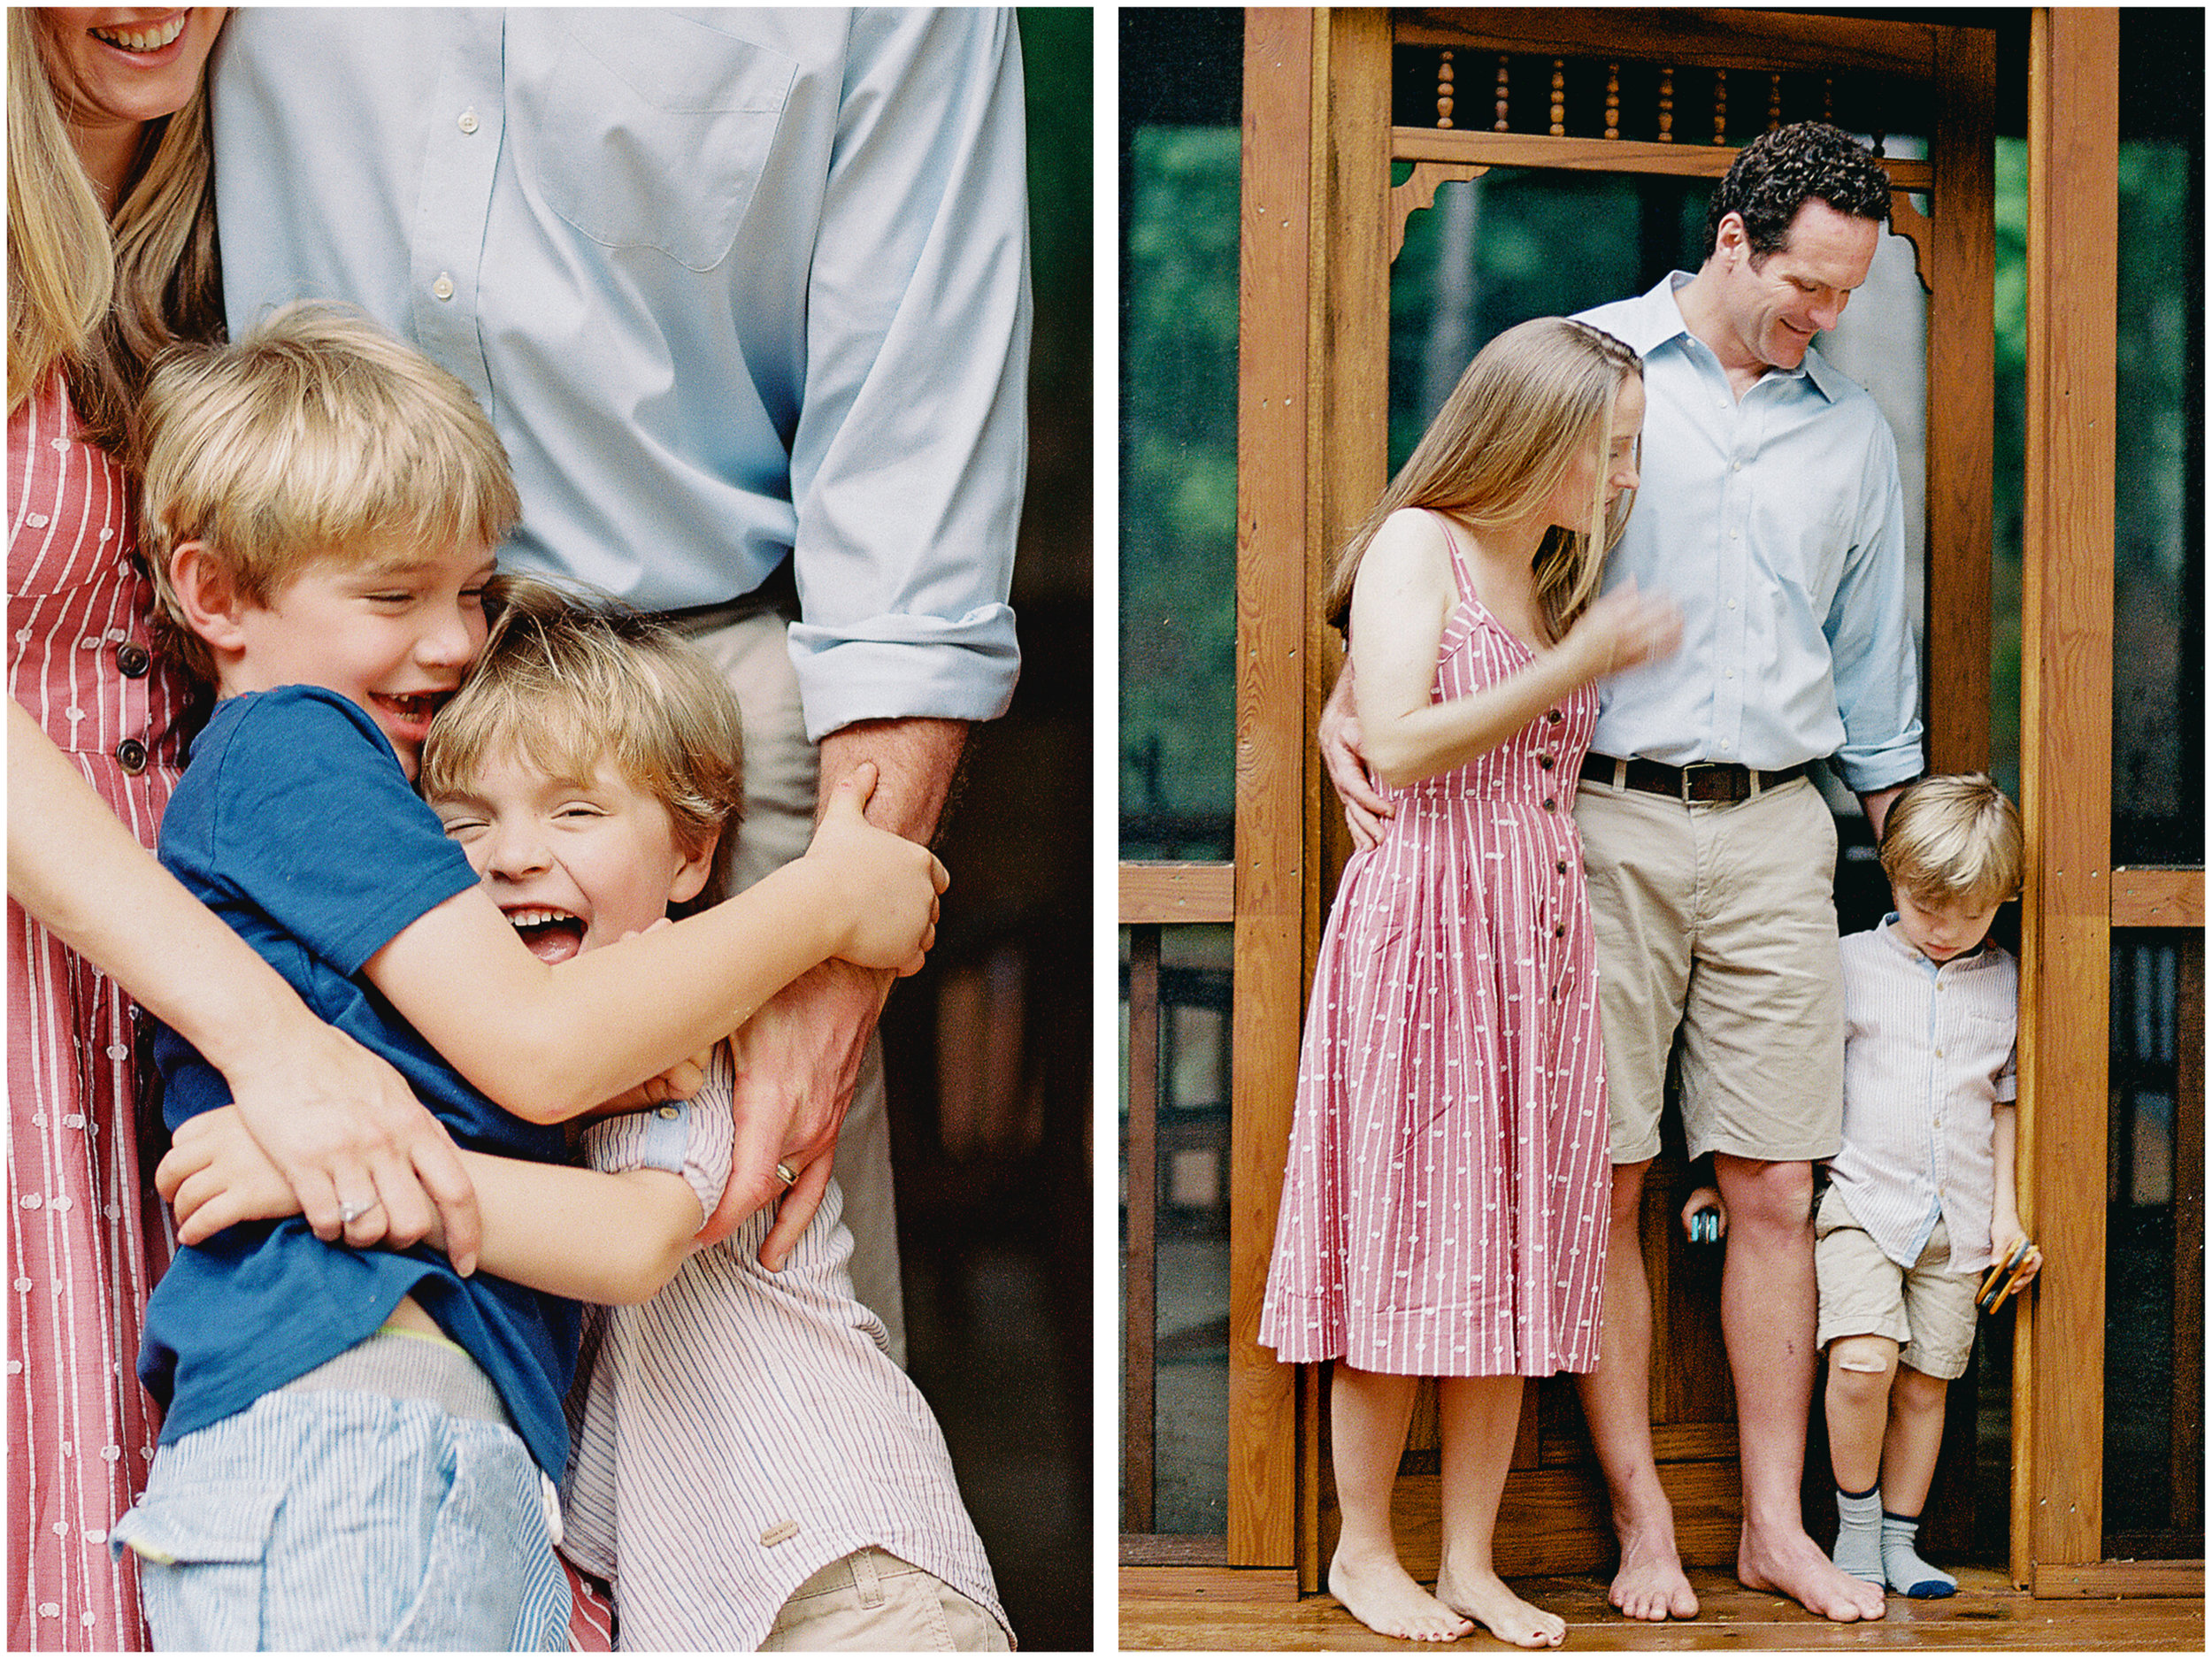 a candid moment of family captured on film by photographer anna laero at a pittsburgh family session